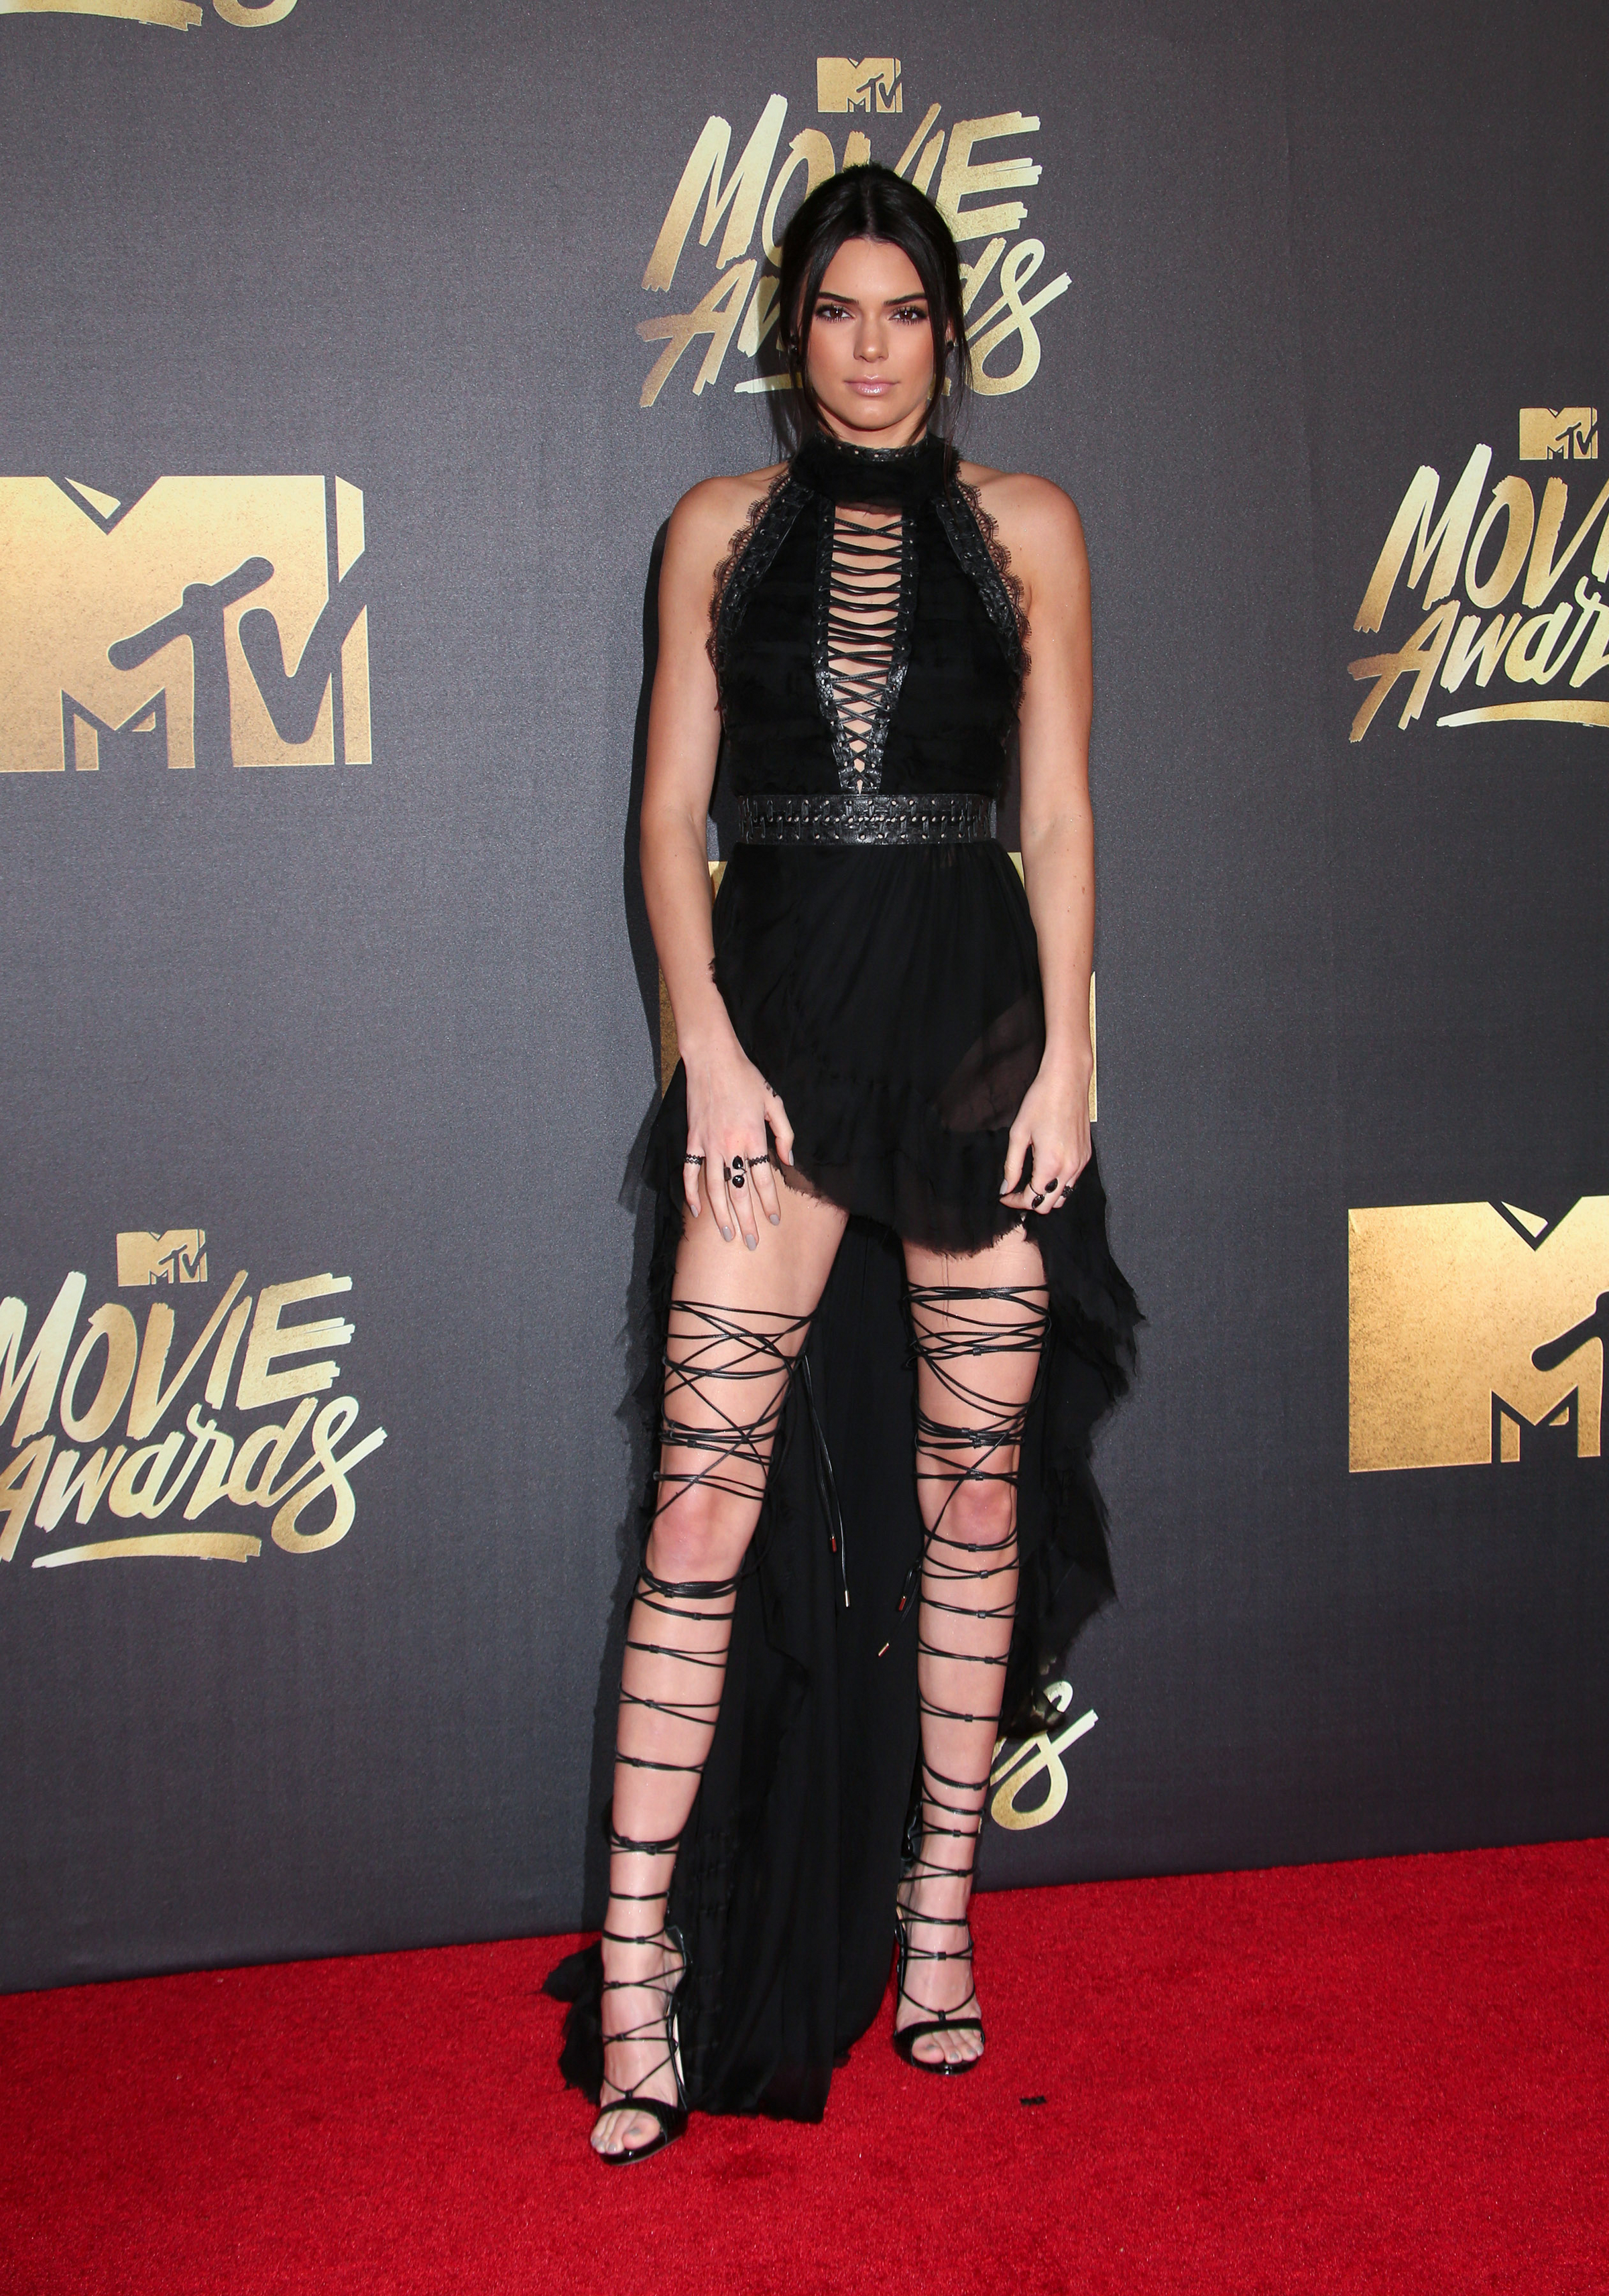 "04/09/2016 - Kendall Jenner - 2016 MTV Movie Awards - Arrivals - Warner Bros. Studios - Burbank, CA, USA - Keywords: Woman, GIrl, Model, ""Keeping Up with the Kardashians"", Reality TV, Vertical, Film Industry, Award Show, People, Person, Arrival, Portrait, Photography, Arts Culture and Entertainment, Celebrity, Celebrities, Topix, Bestof, Red Carpet Event, Annual Event, California Orientation: Portrait Face Count: 1 - False - Photo Credit: PRPhotos.com - Contact (1-866-551-7827) - Portrait Face Count: 1"